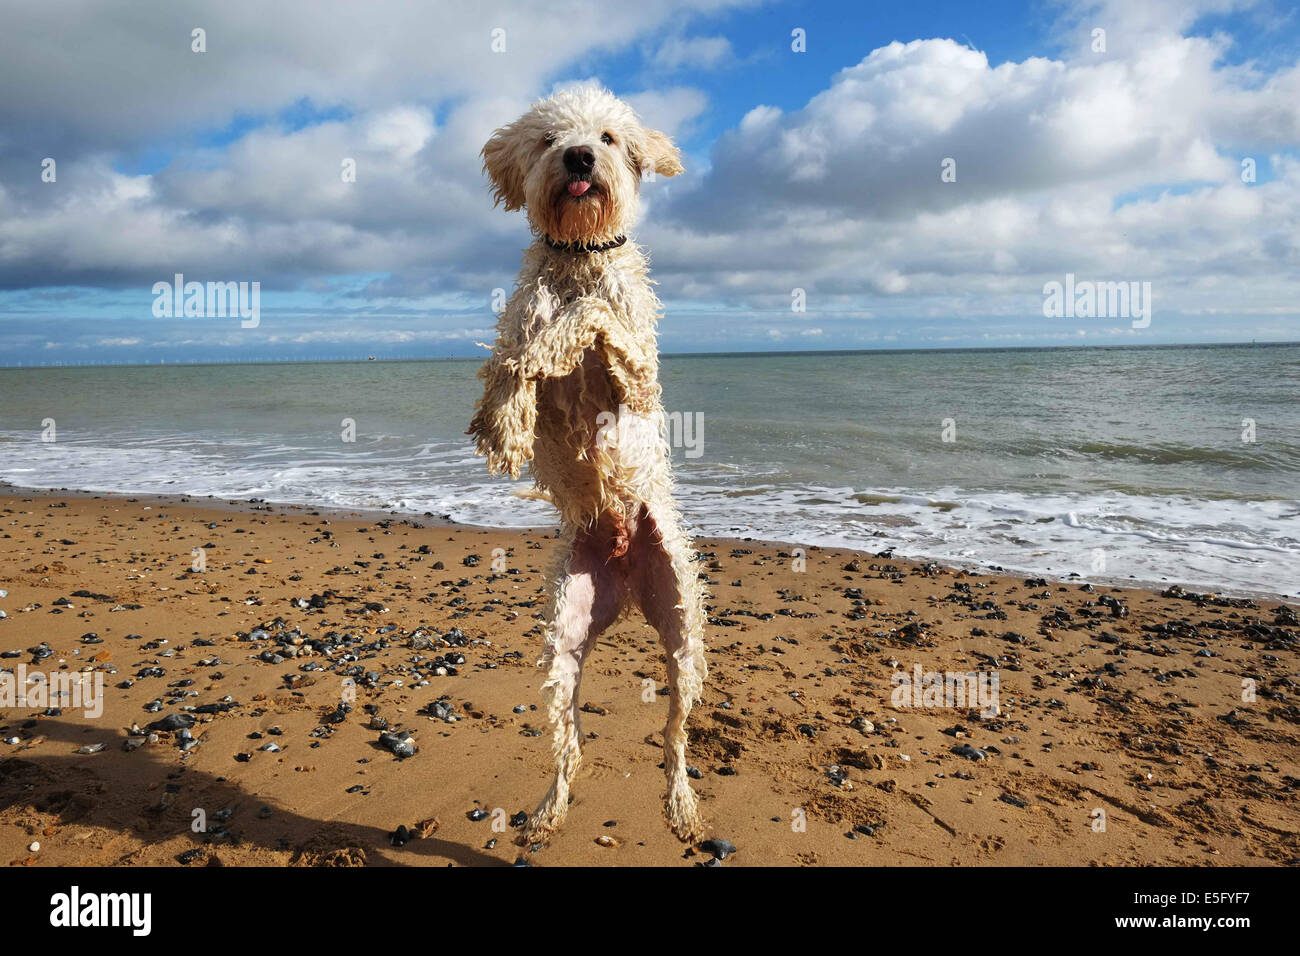 Labradoodle Dog jumping on a beach - Stock Image